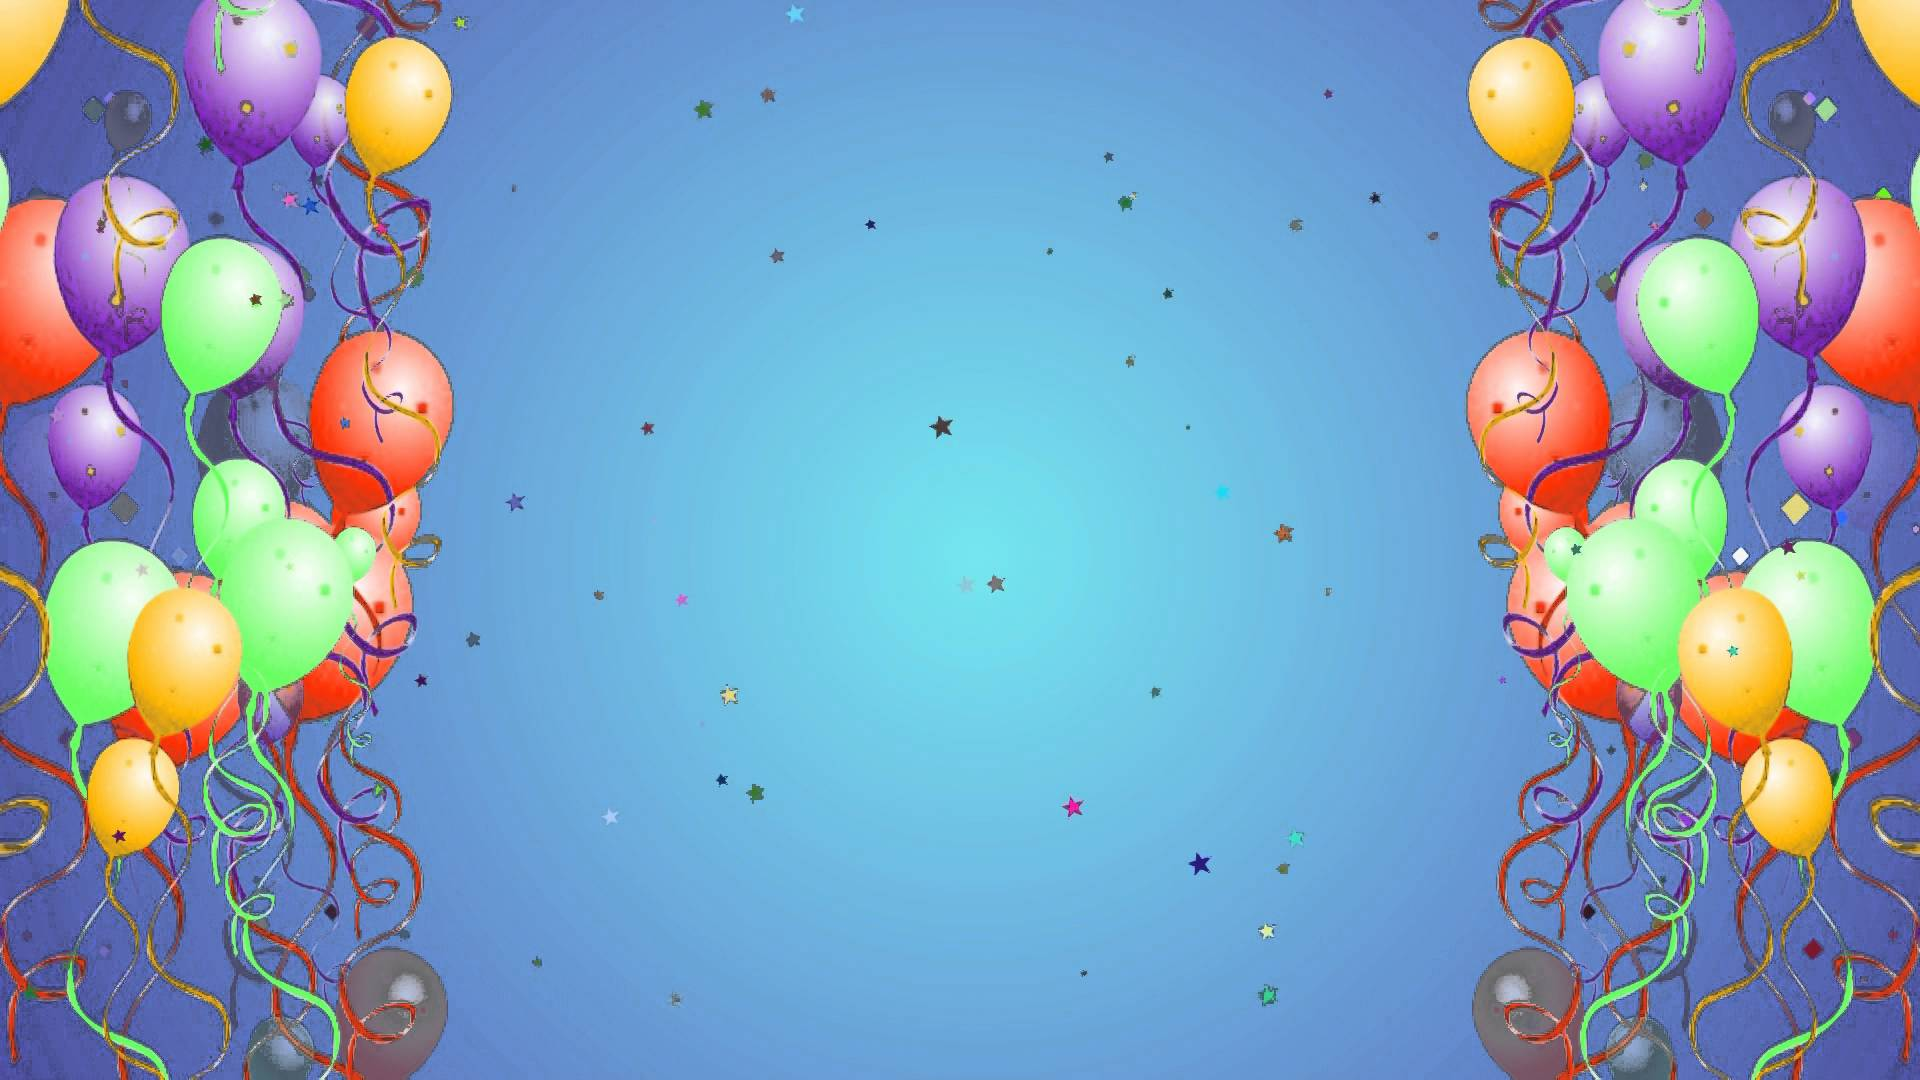 balloon with star particles hd presentation backgrounds for powerpoint templates ppt backgrounds